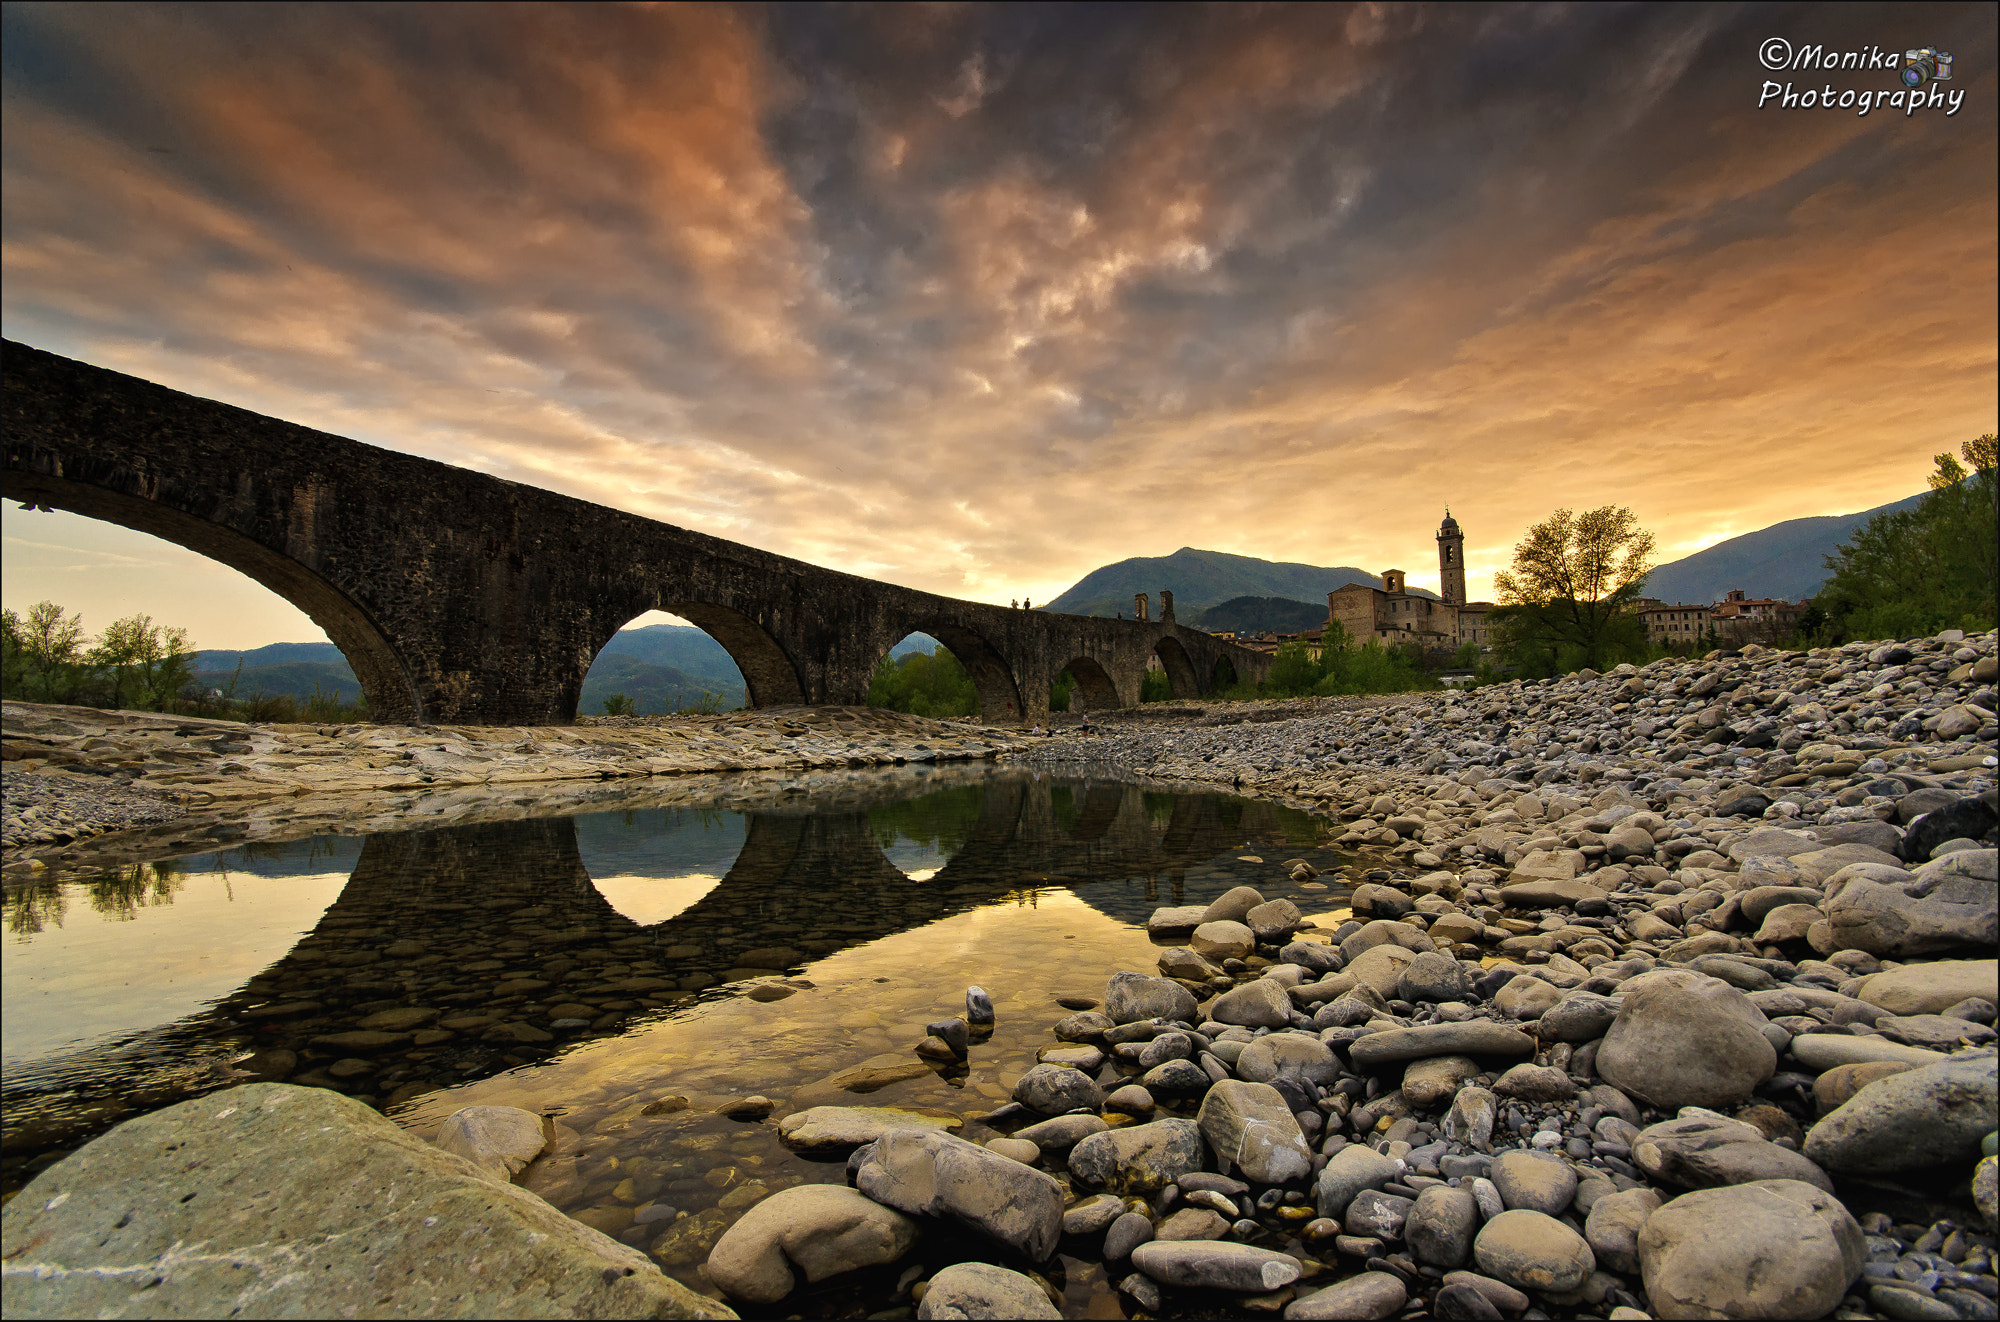 Photograph BOBBIO, SPRING SUNSET  by Monika Fotografie on 500px